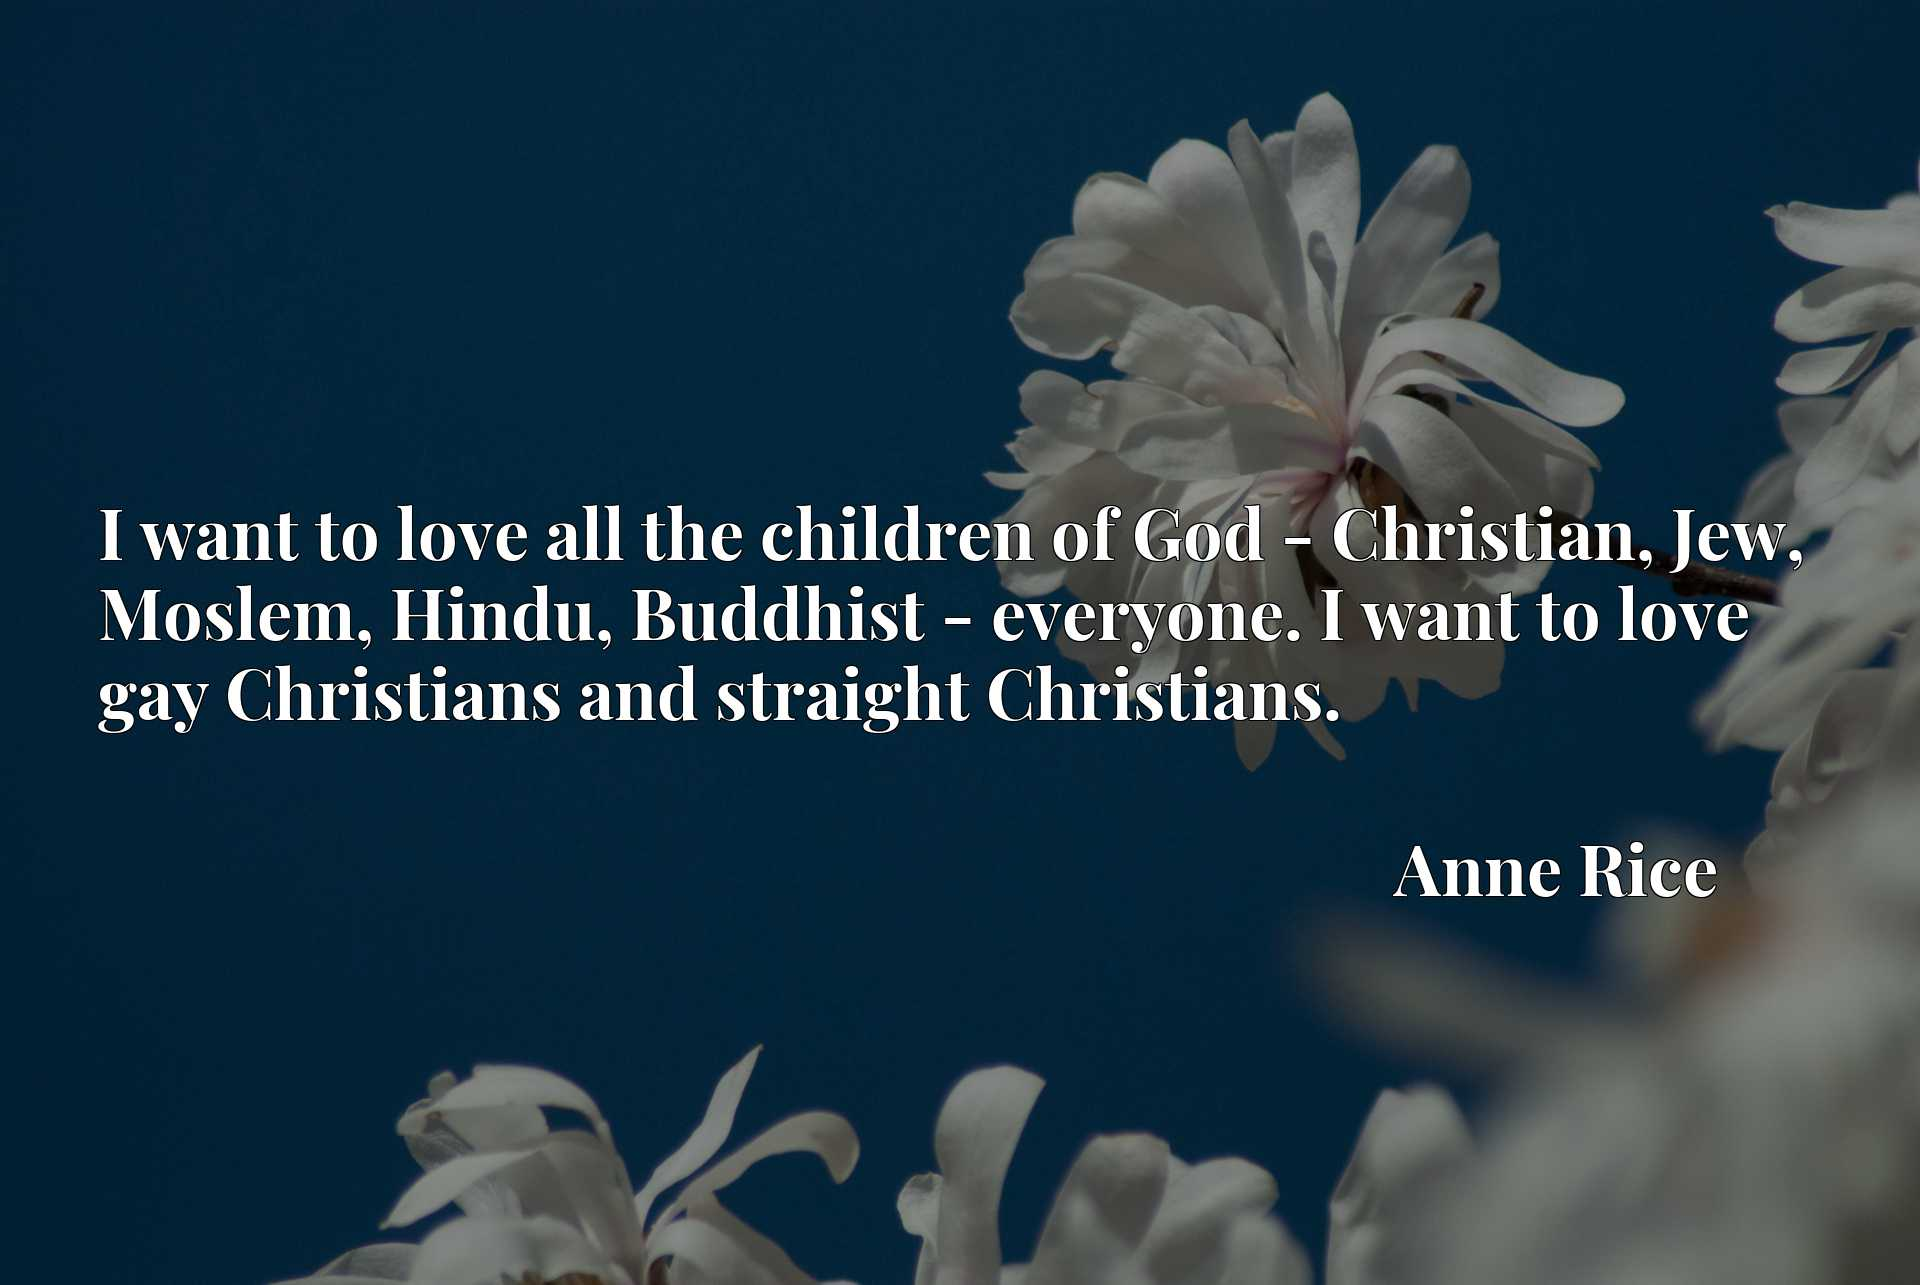 I want to love all the children of God - Christian, Jew, Moslem, Hindu, Buddhist - everyone. I want to love gay Christians and straight Christians.